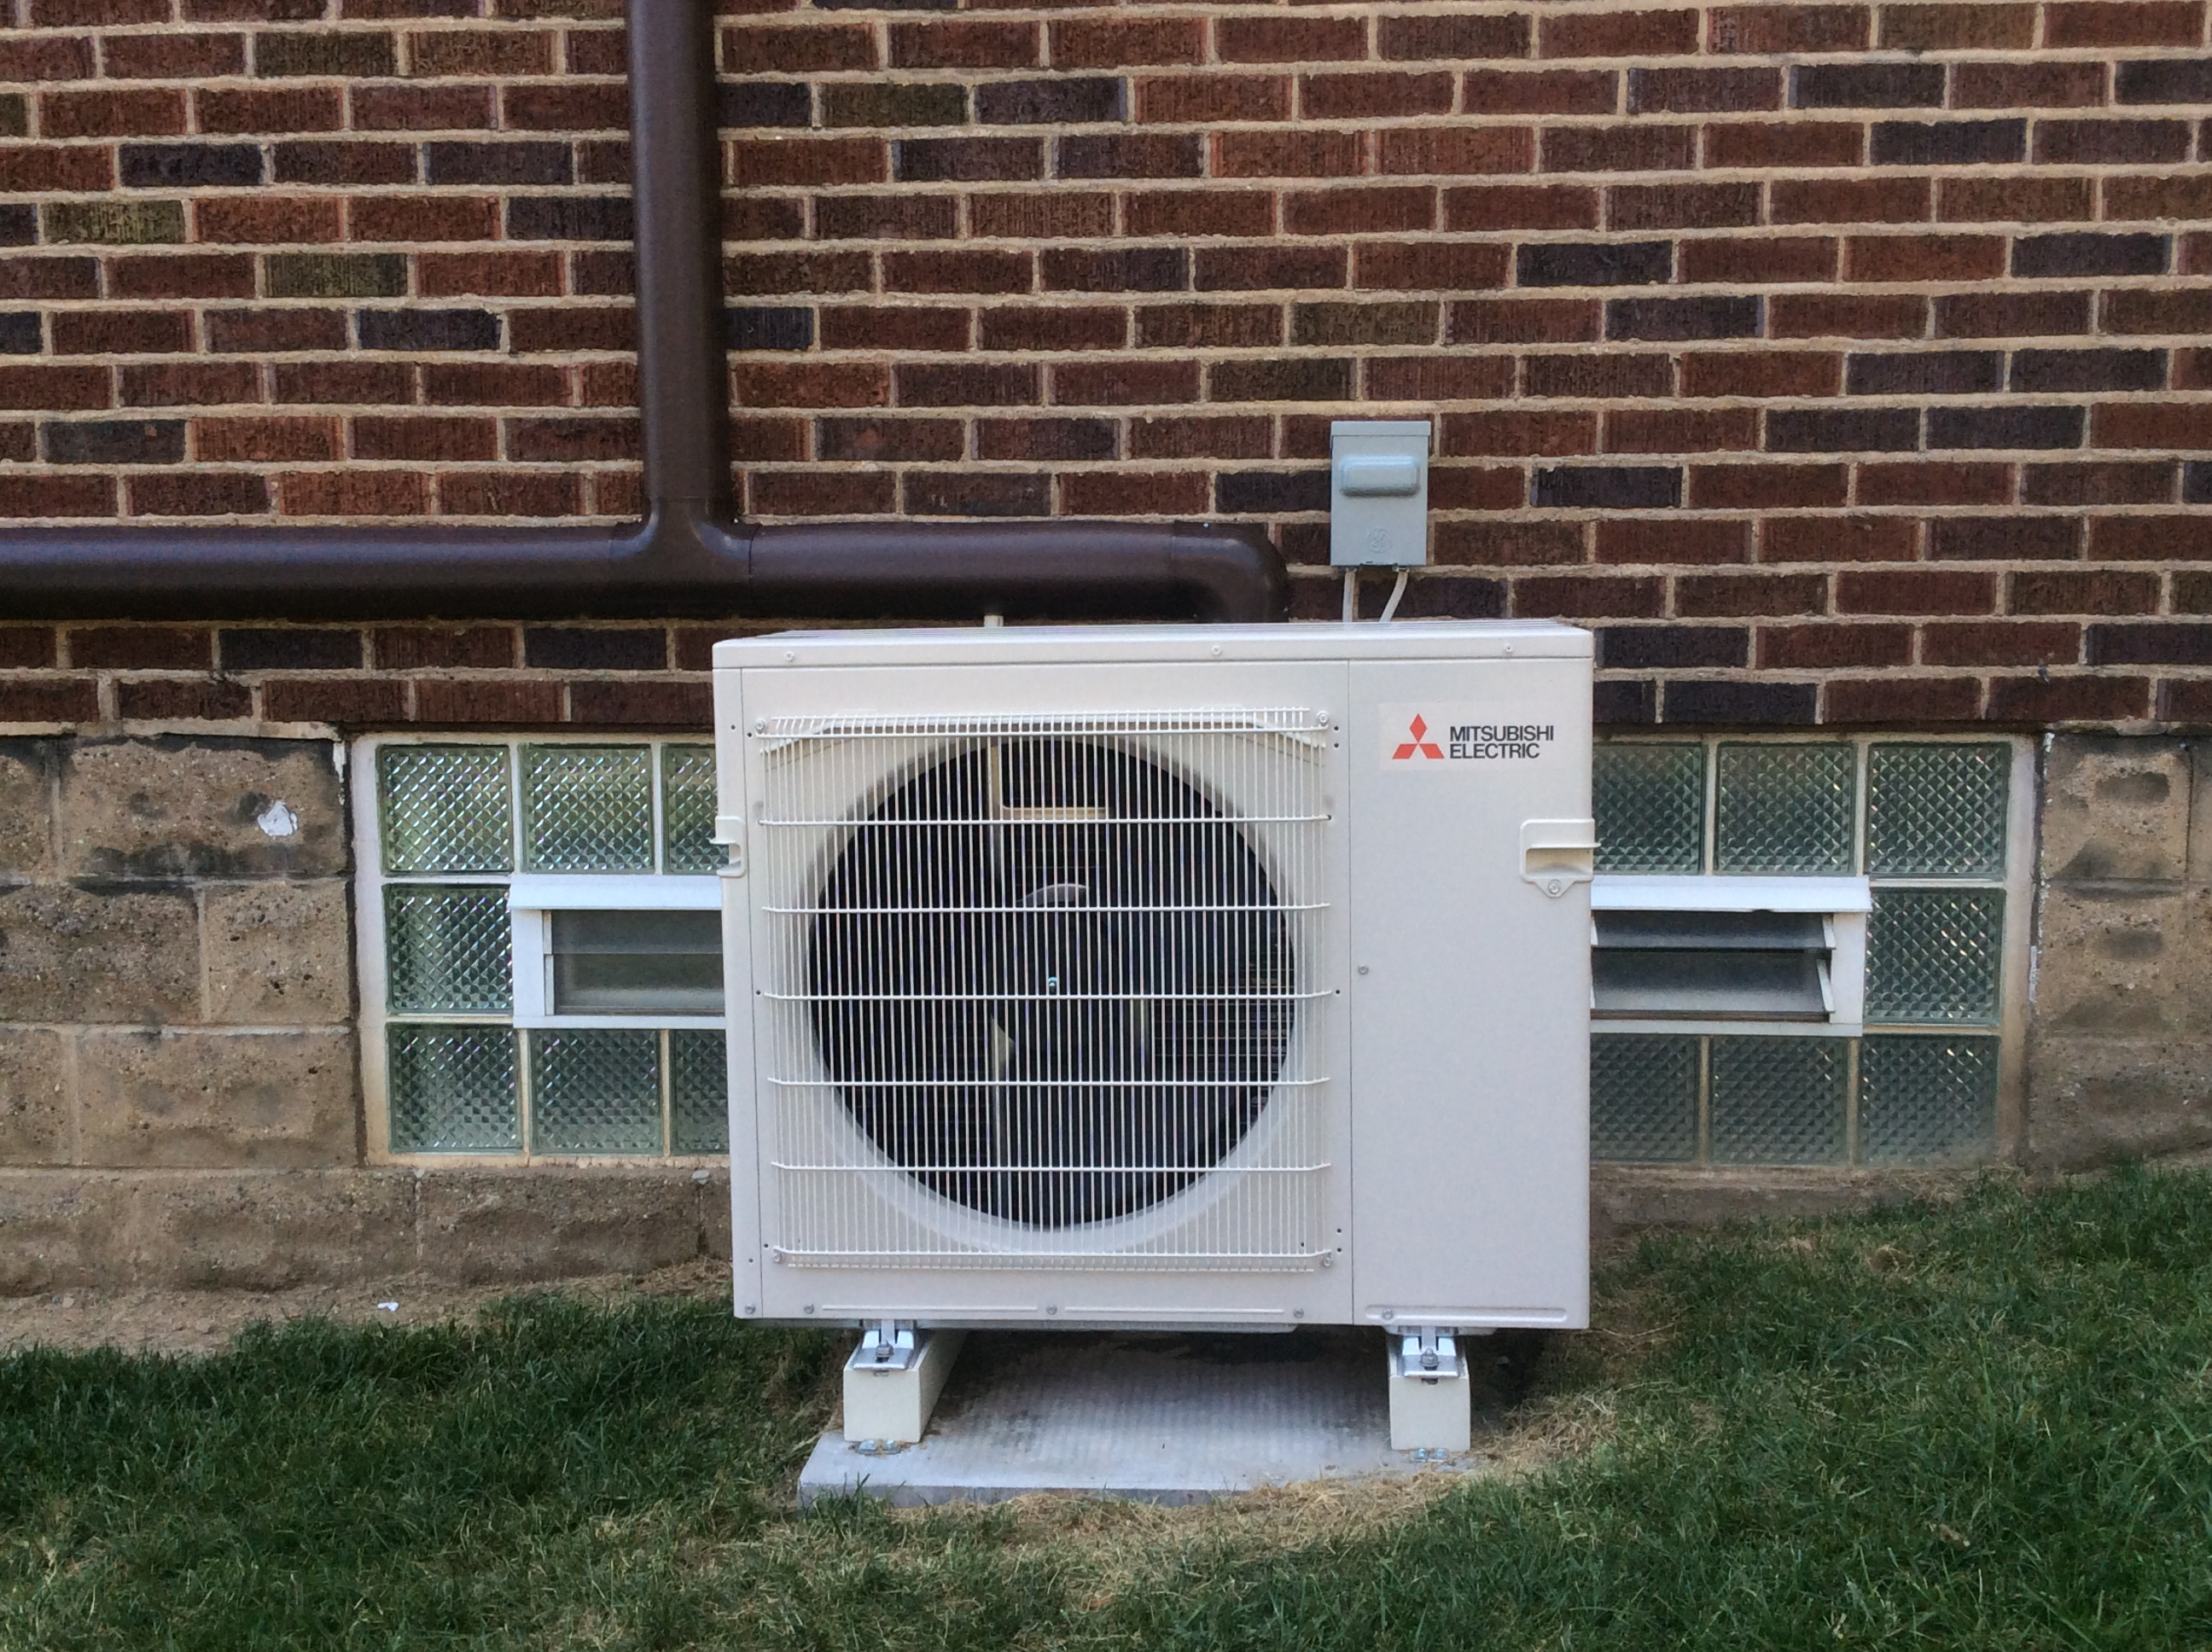 Mitsubishi Electric Air Conditioning system installed by Phillips Heating & Air Conditioning of Pittsburgh, PA.